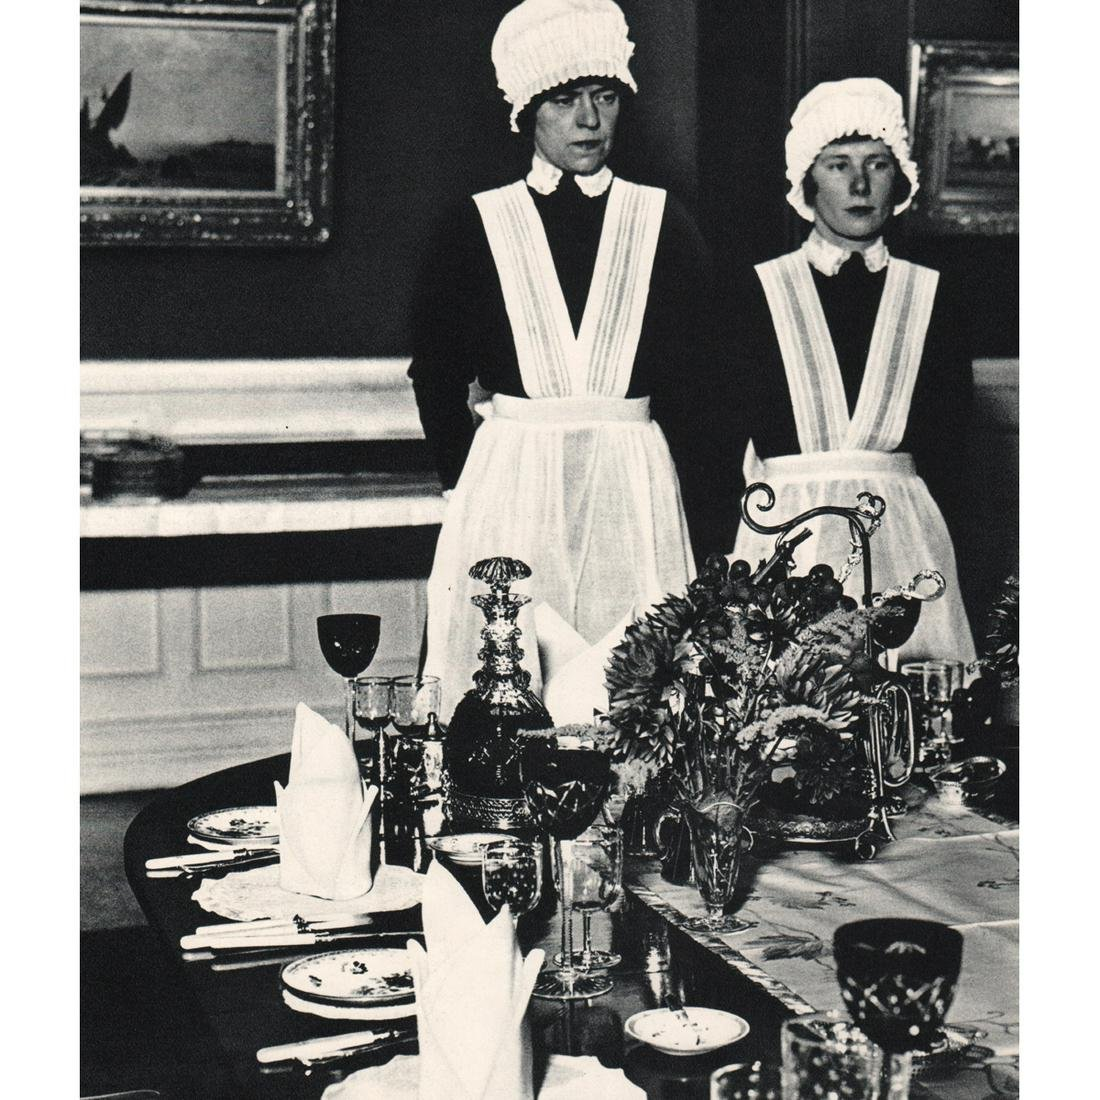 BILL BRANDT - Parlourmaid and Under-parlourmaid